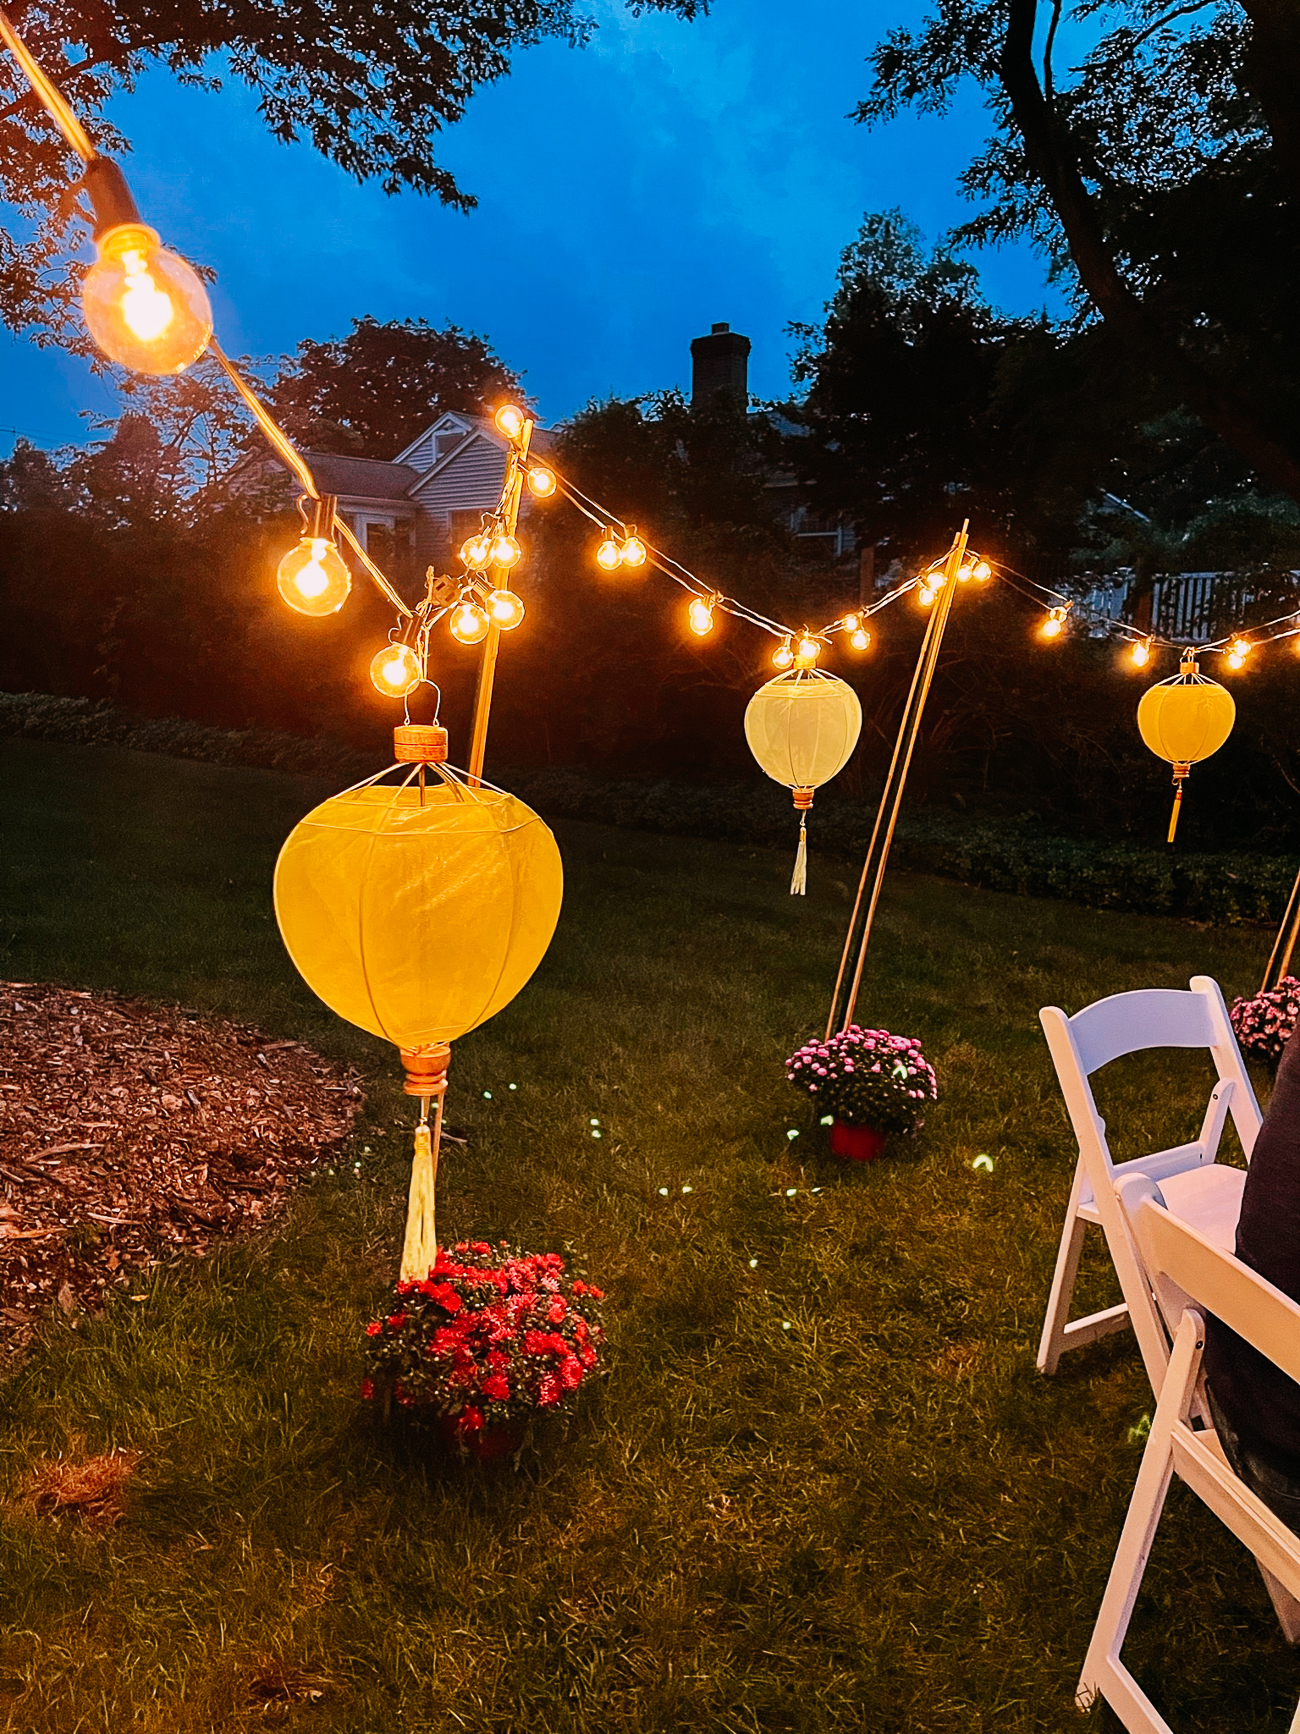 Chinese lanterns and string lights